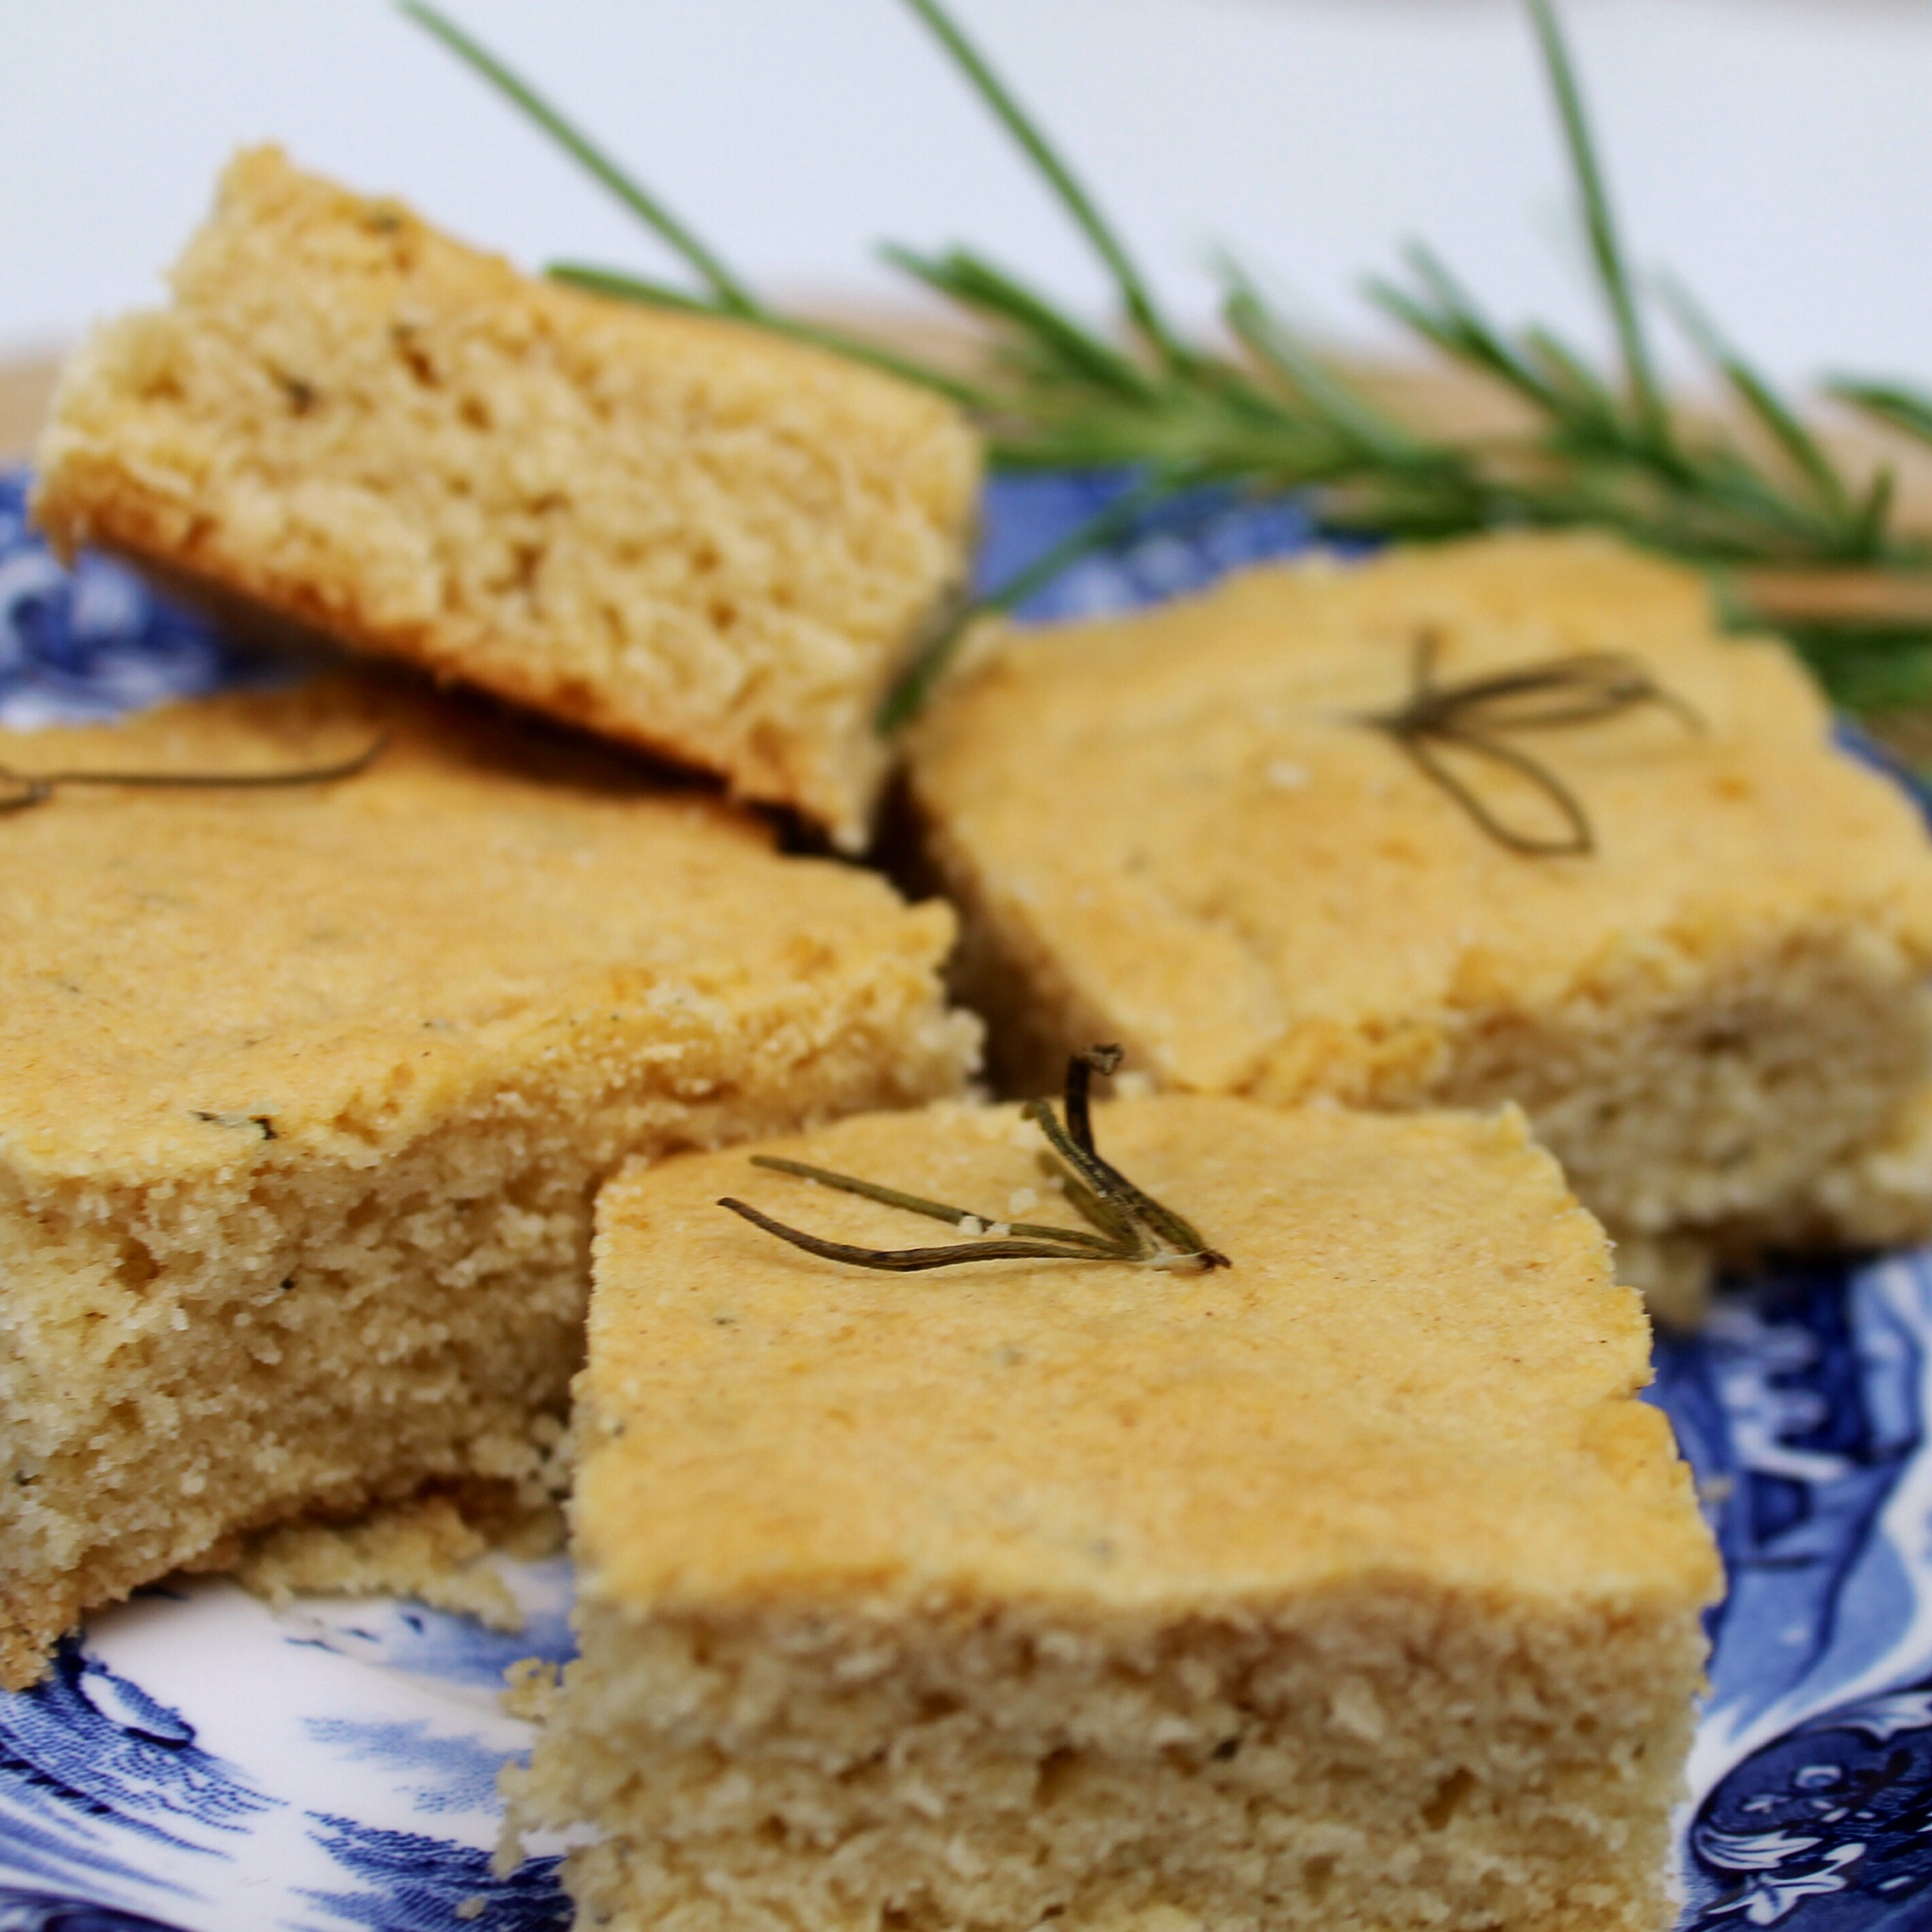 Rosemary shortbread cake